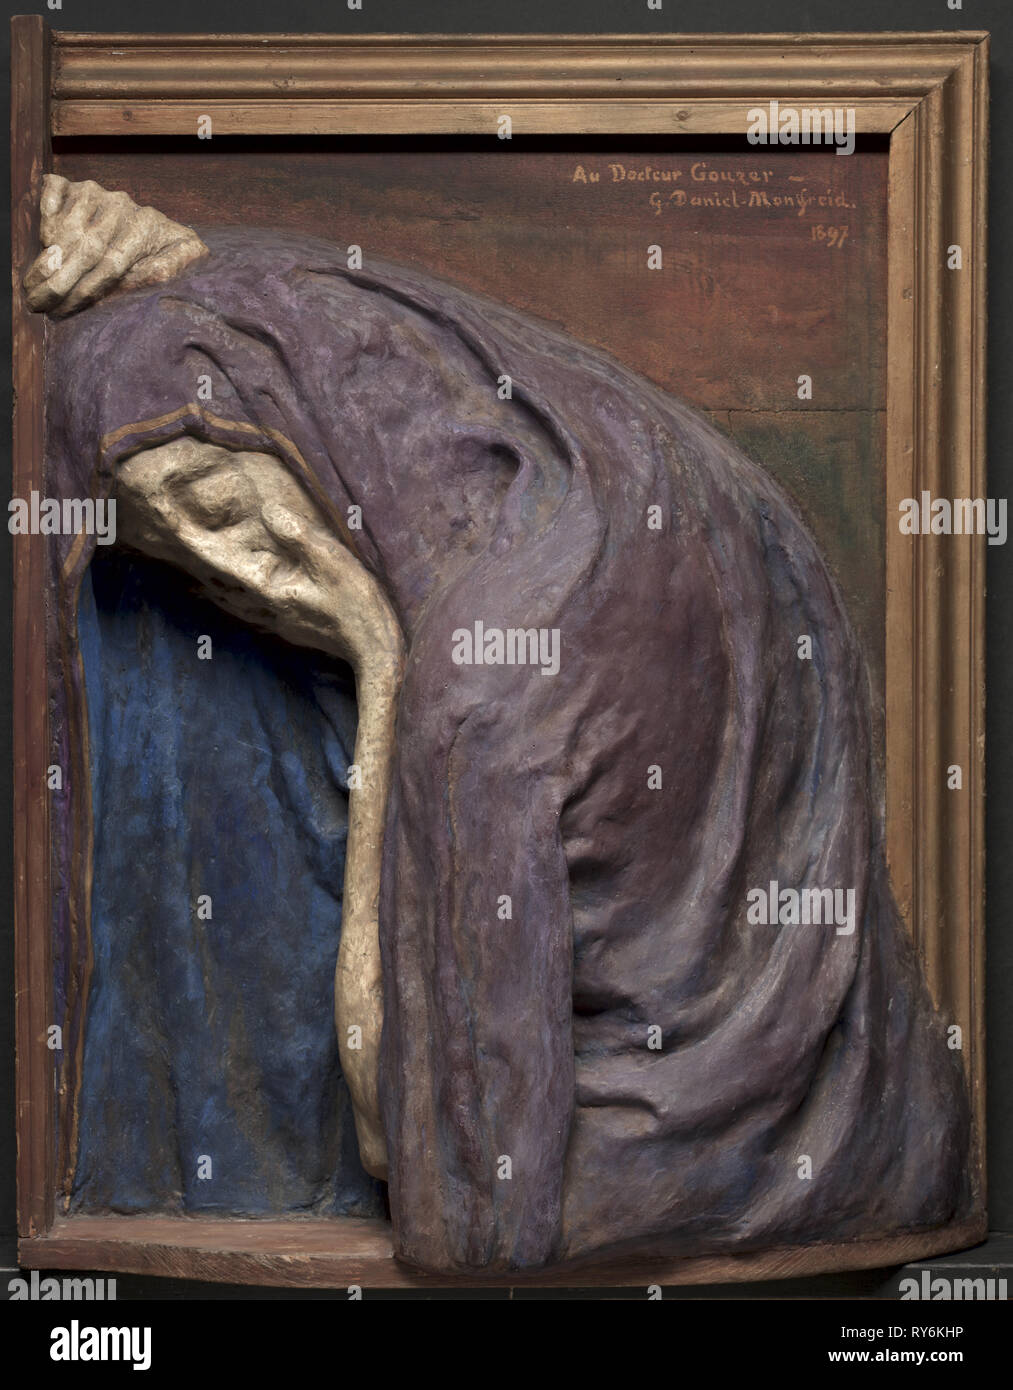 Mater Dolorosa (The Virgin Mary Mourning), 1897. Georges-Daniel de Monfreid (French, 1856-1929). Painted plaster and wood; framed: 73.7 x 59.1 x 17.8 cm (29 x 23 1/4 x 7 in - Stock Image